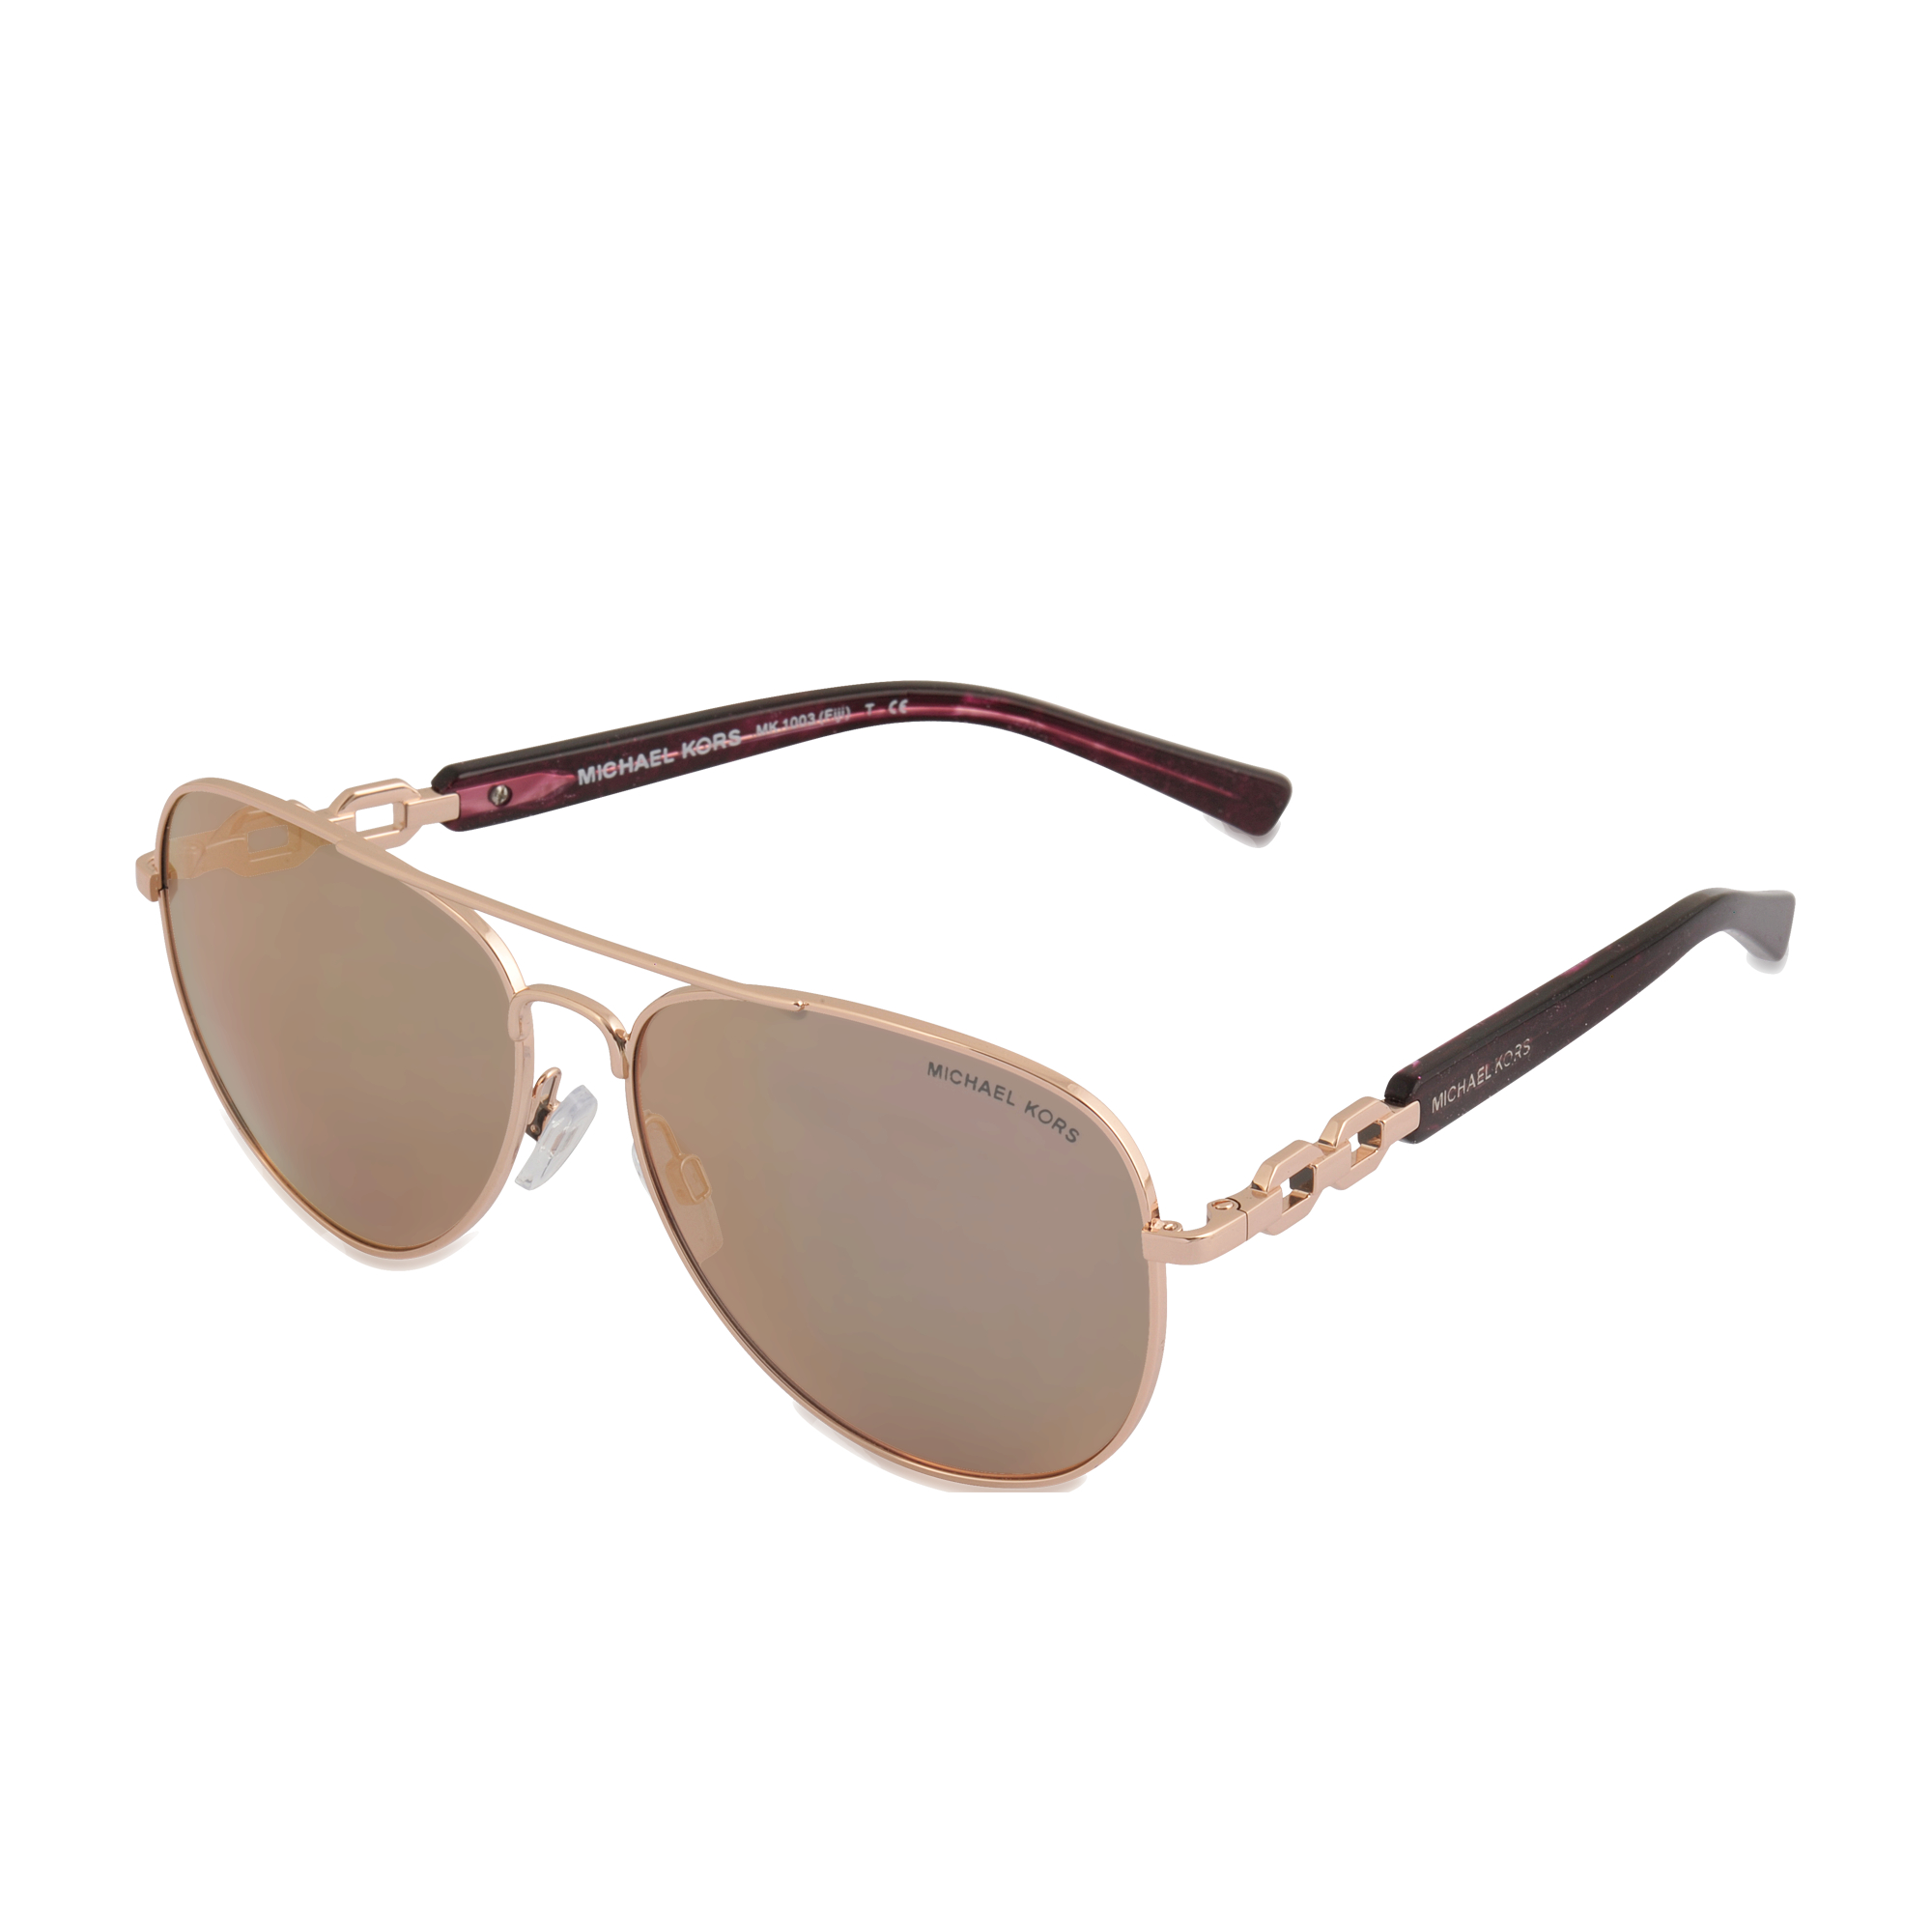 Michael Kors Gold Frame Sunglasses : Michael michael kors Fiji Rose Gold Sunglasses Mk1003 in ...